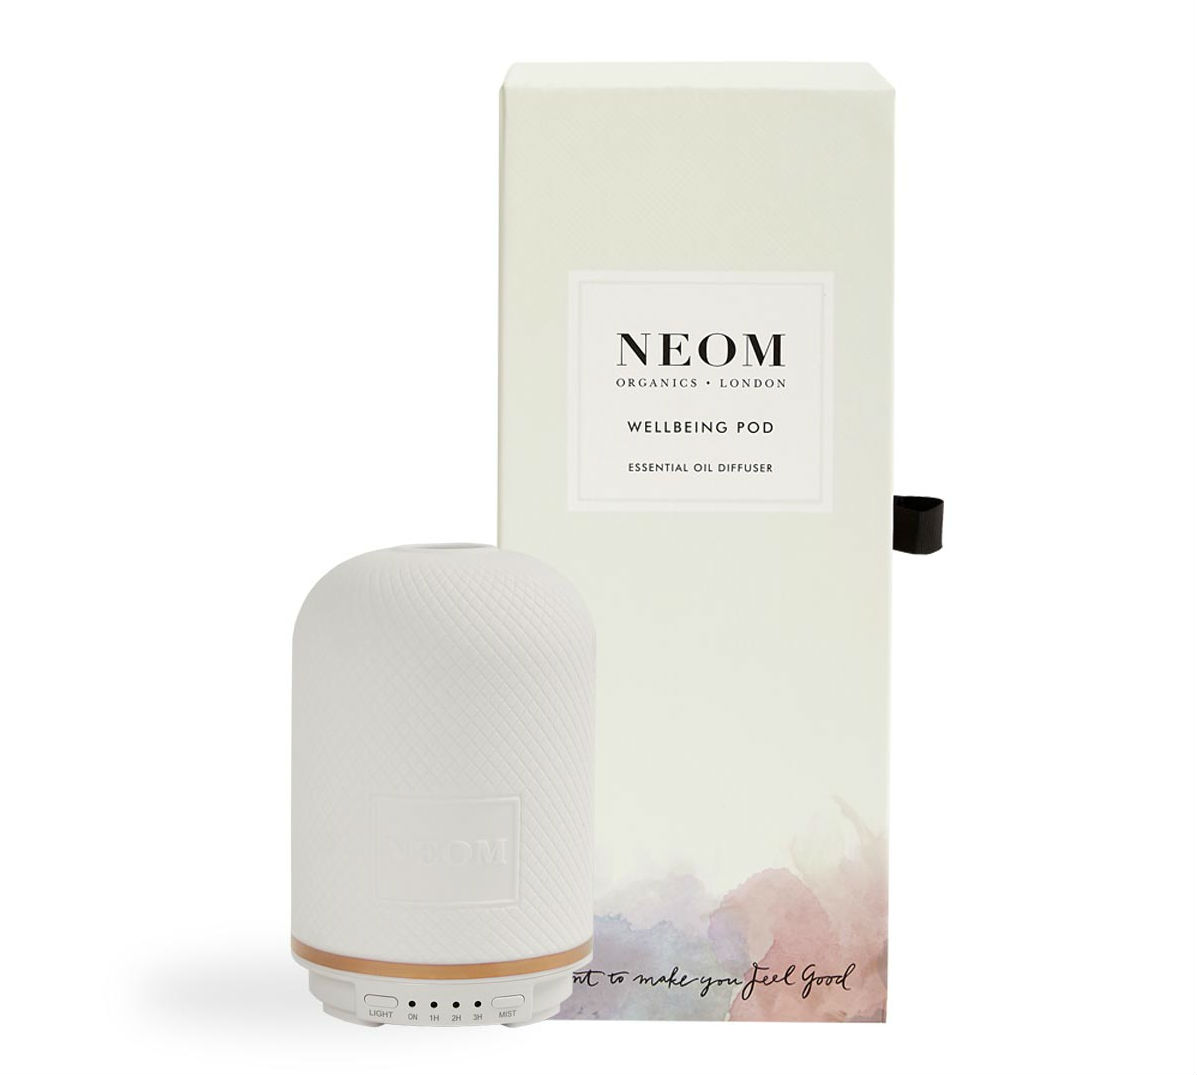 Nicola Elliot recommends Neom Organics Wellbeing Pod